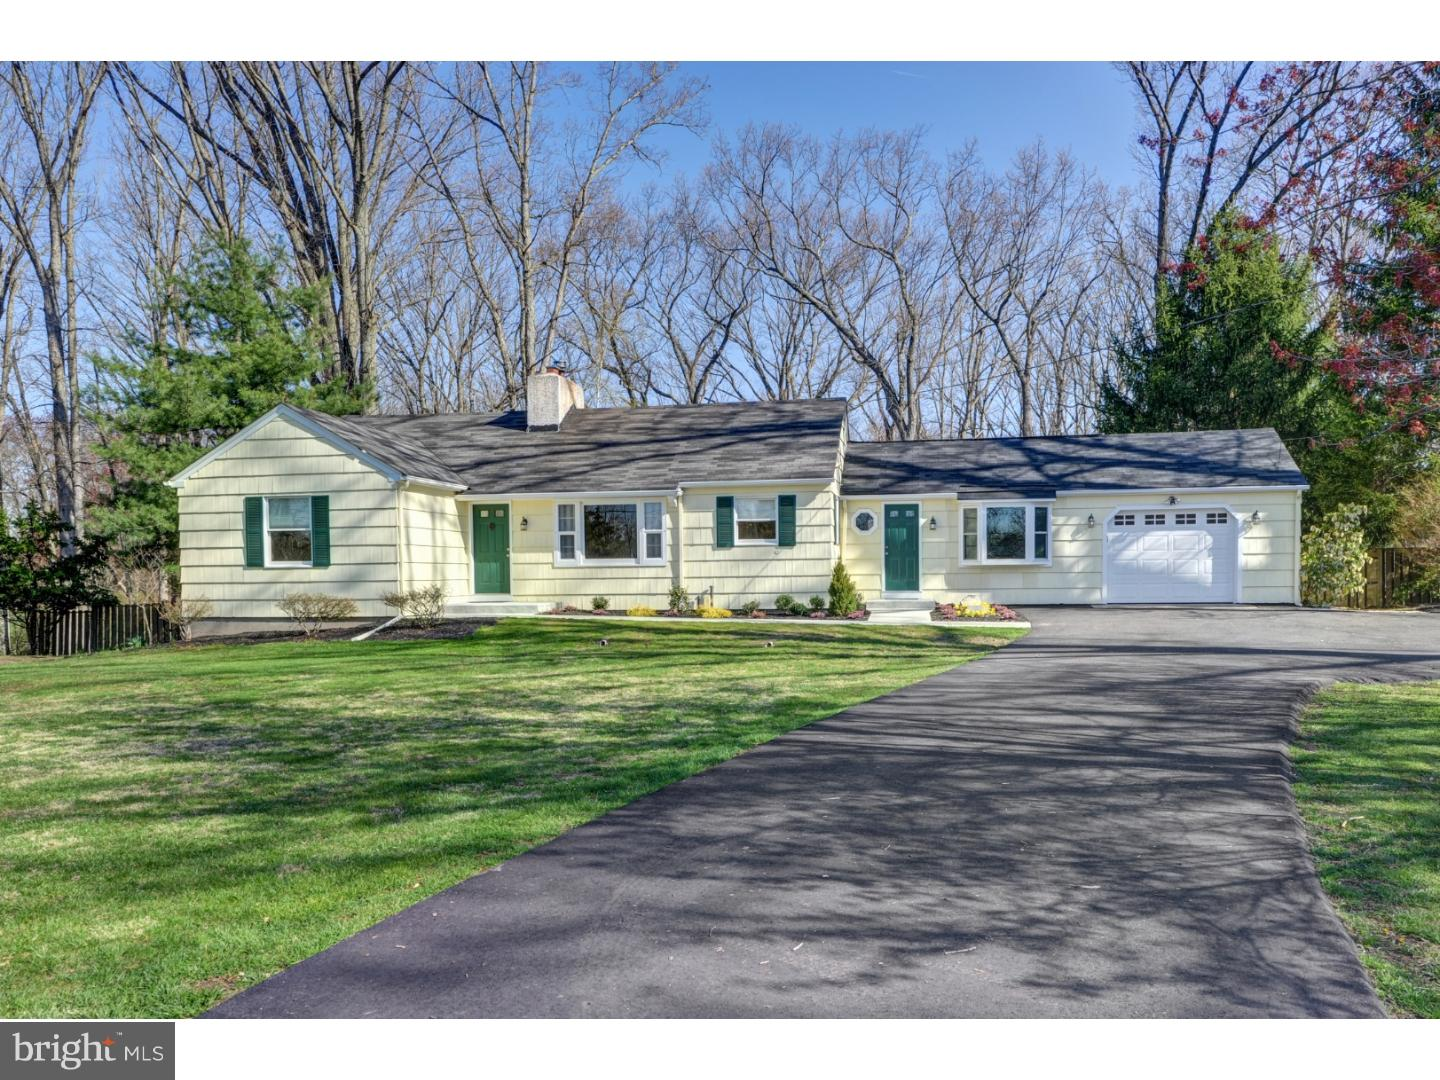 Property for Sale at 101 NURSERY Road Titusville, New Jersey 08560 United States